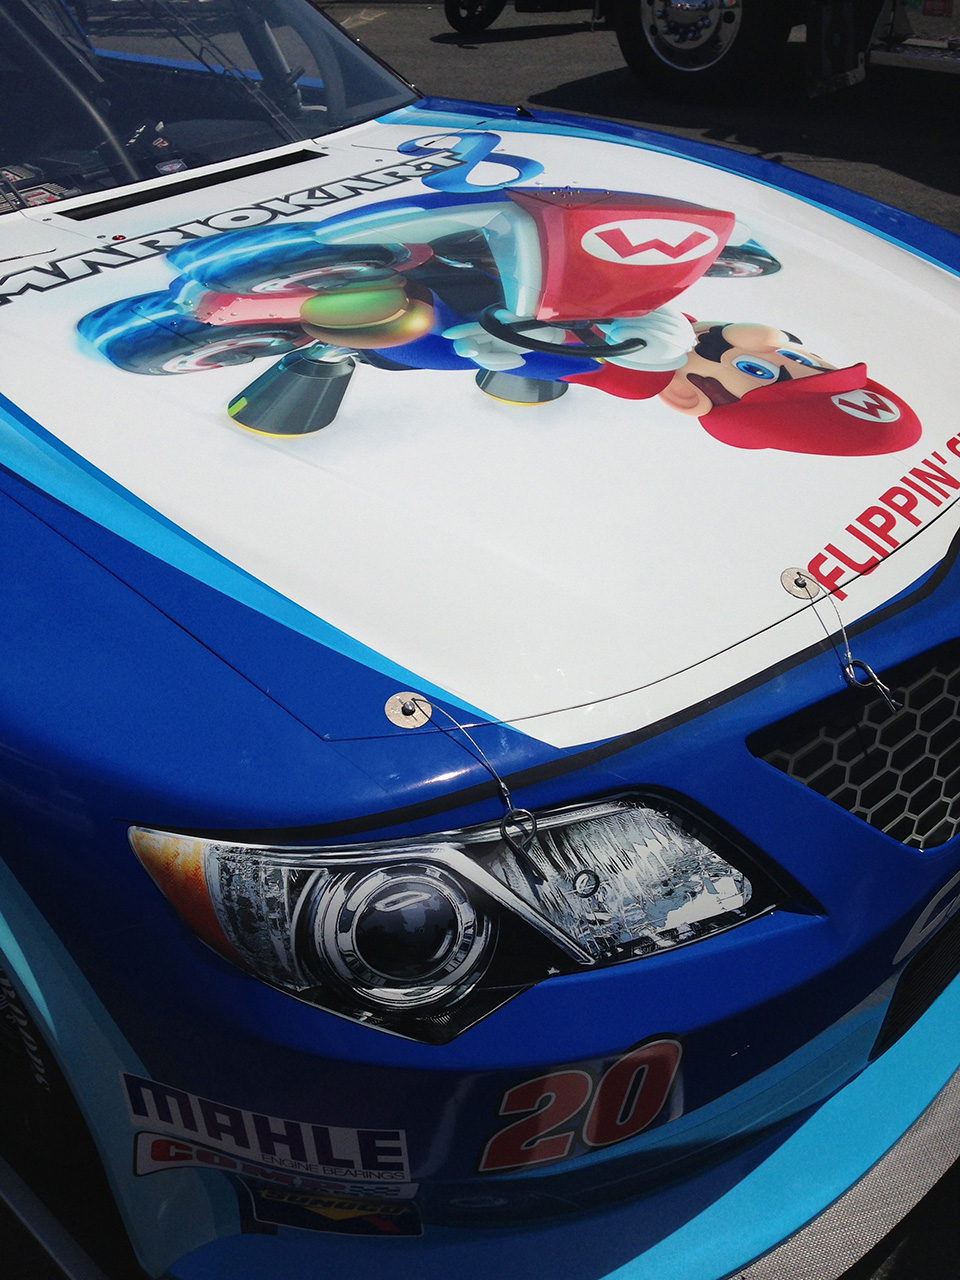 Mario Kart 8 Heads Into A NASCAR Race This Weekend Polygon